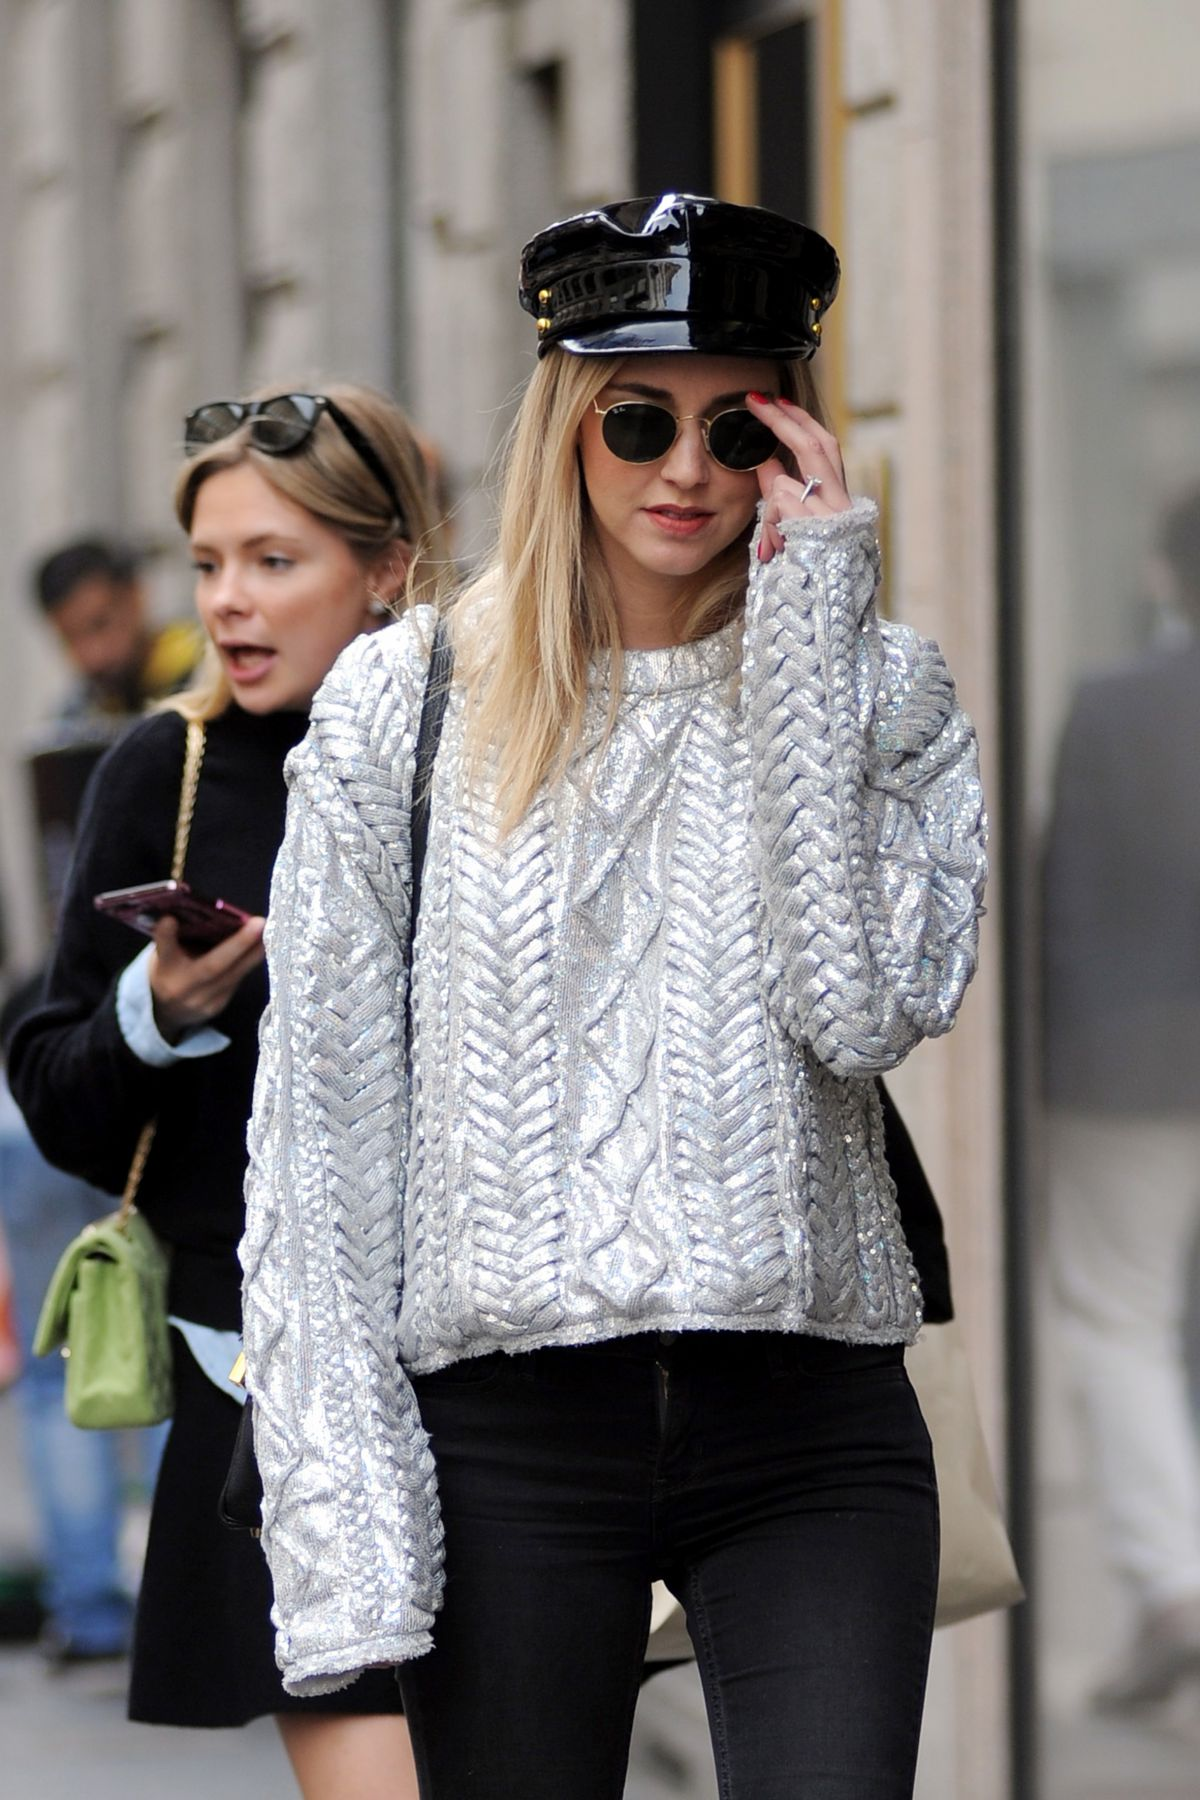 Chiara Ferragni Out for shopping in Milan, Italy